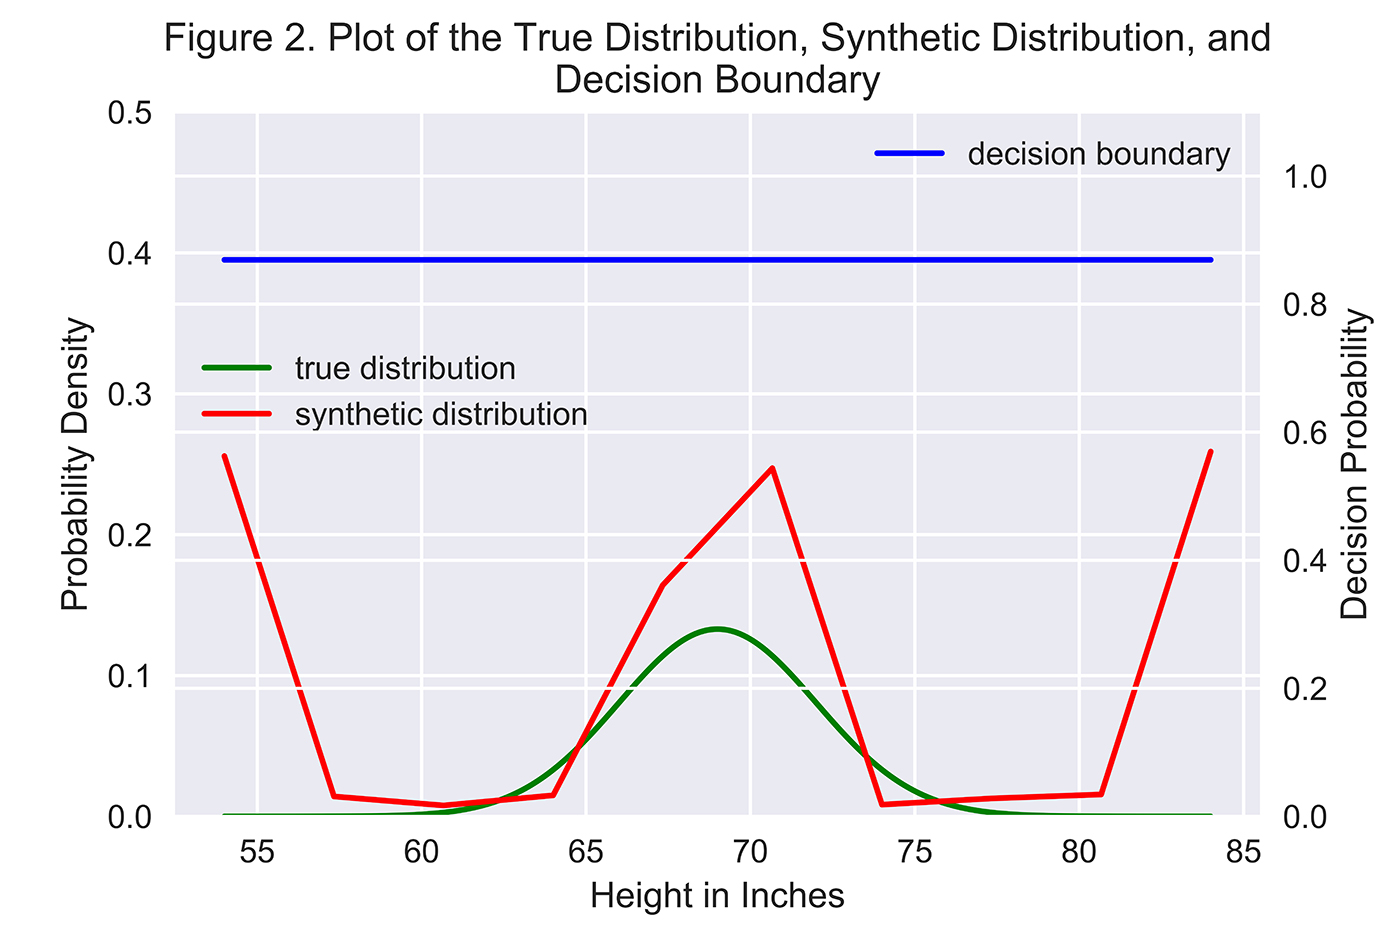 plot of the true distribution, synthetic distribution, and decision boundary